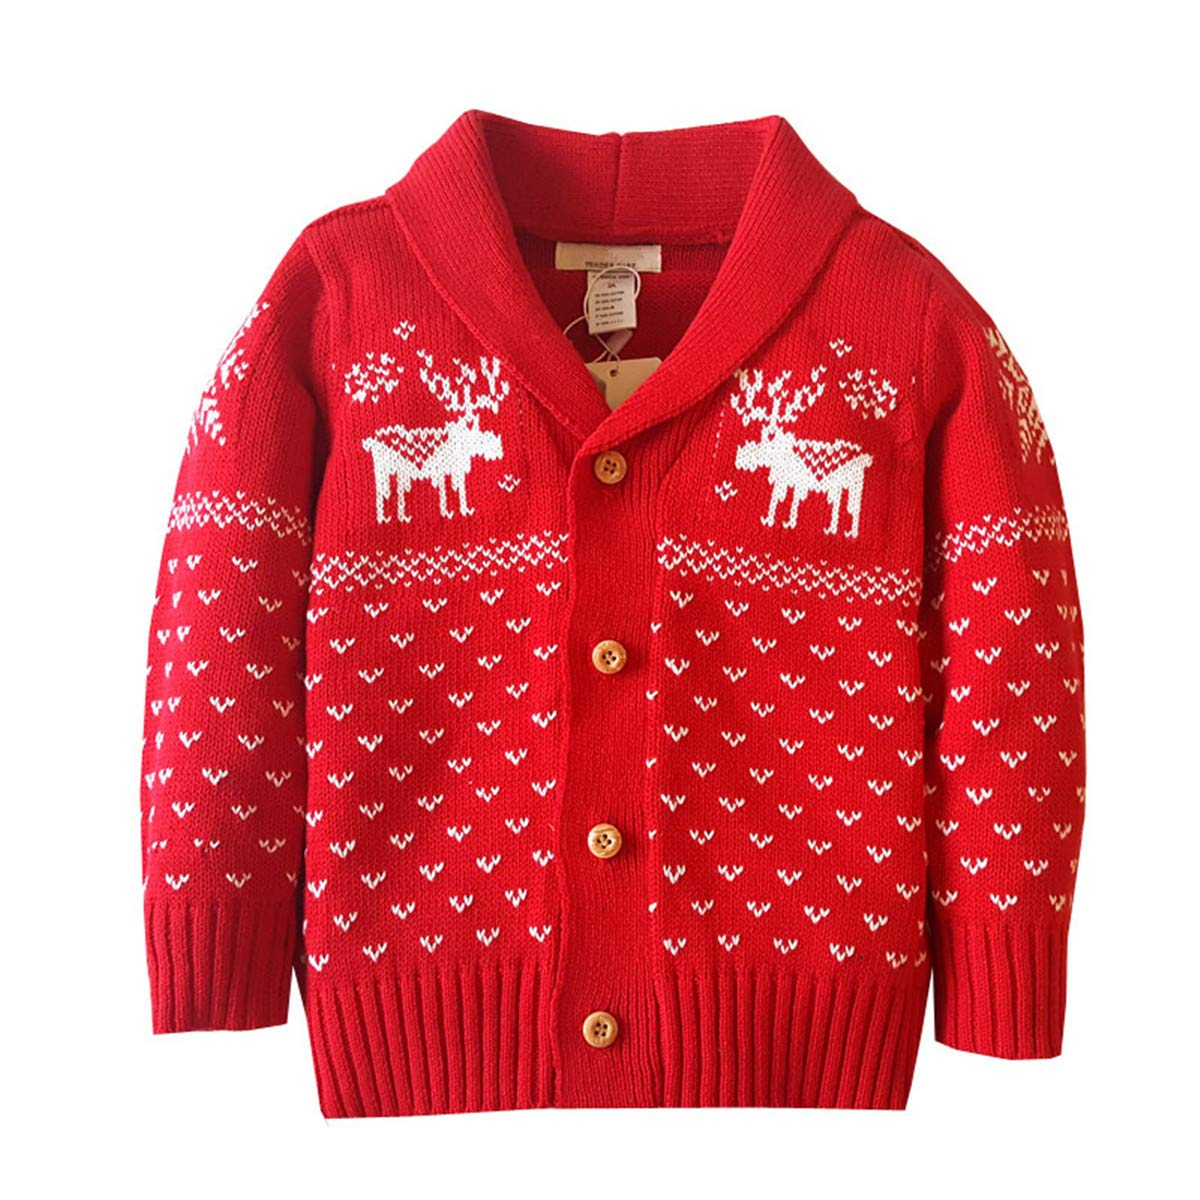 Dealone Baby Boys Girls Cardigan Sweater Toddler Knitted Jacket Outerwear BC0831